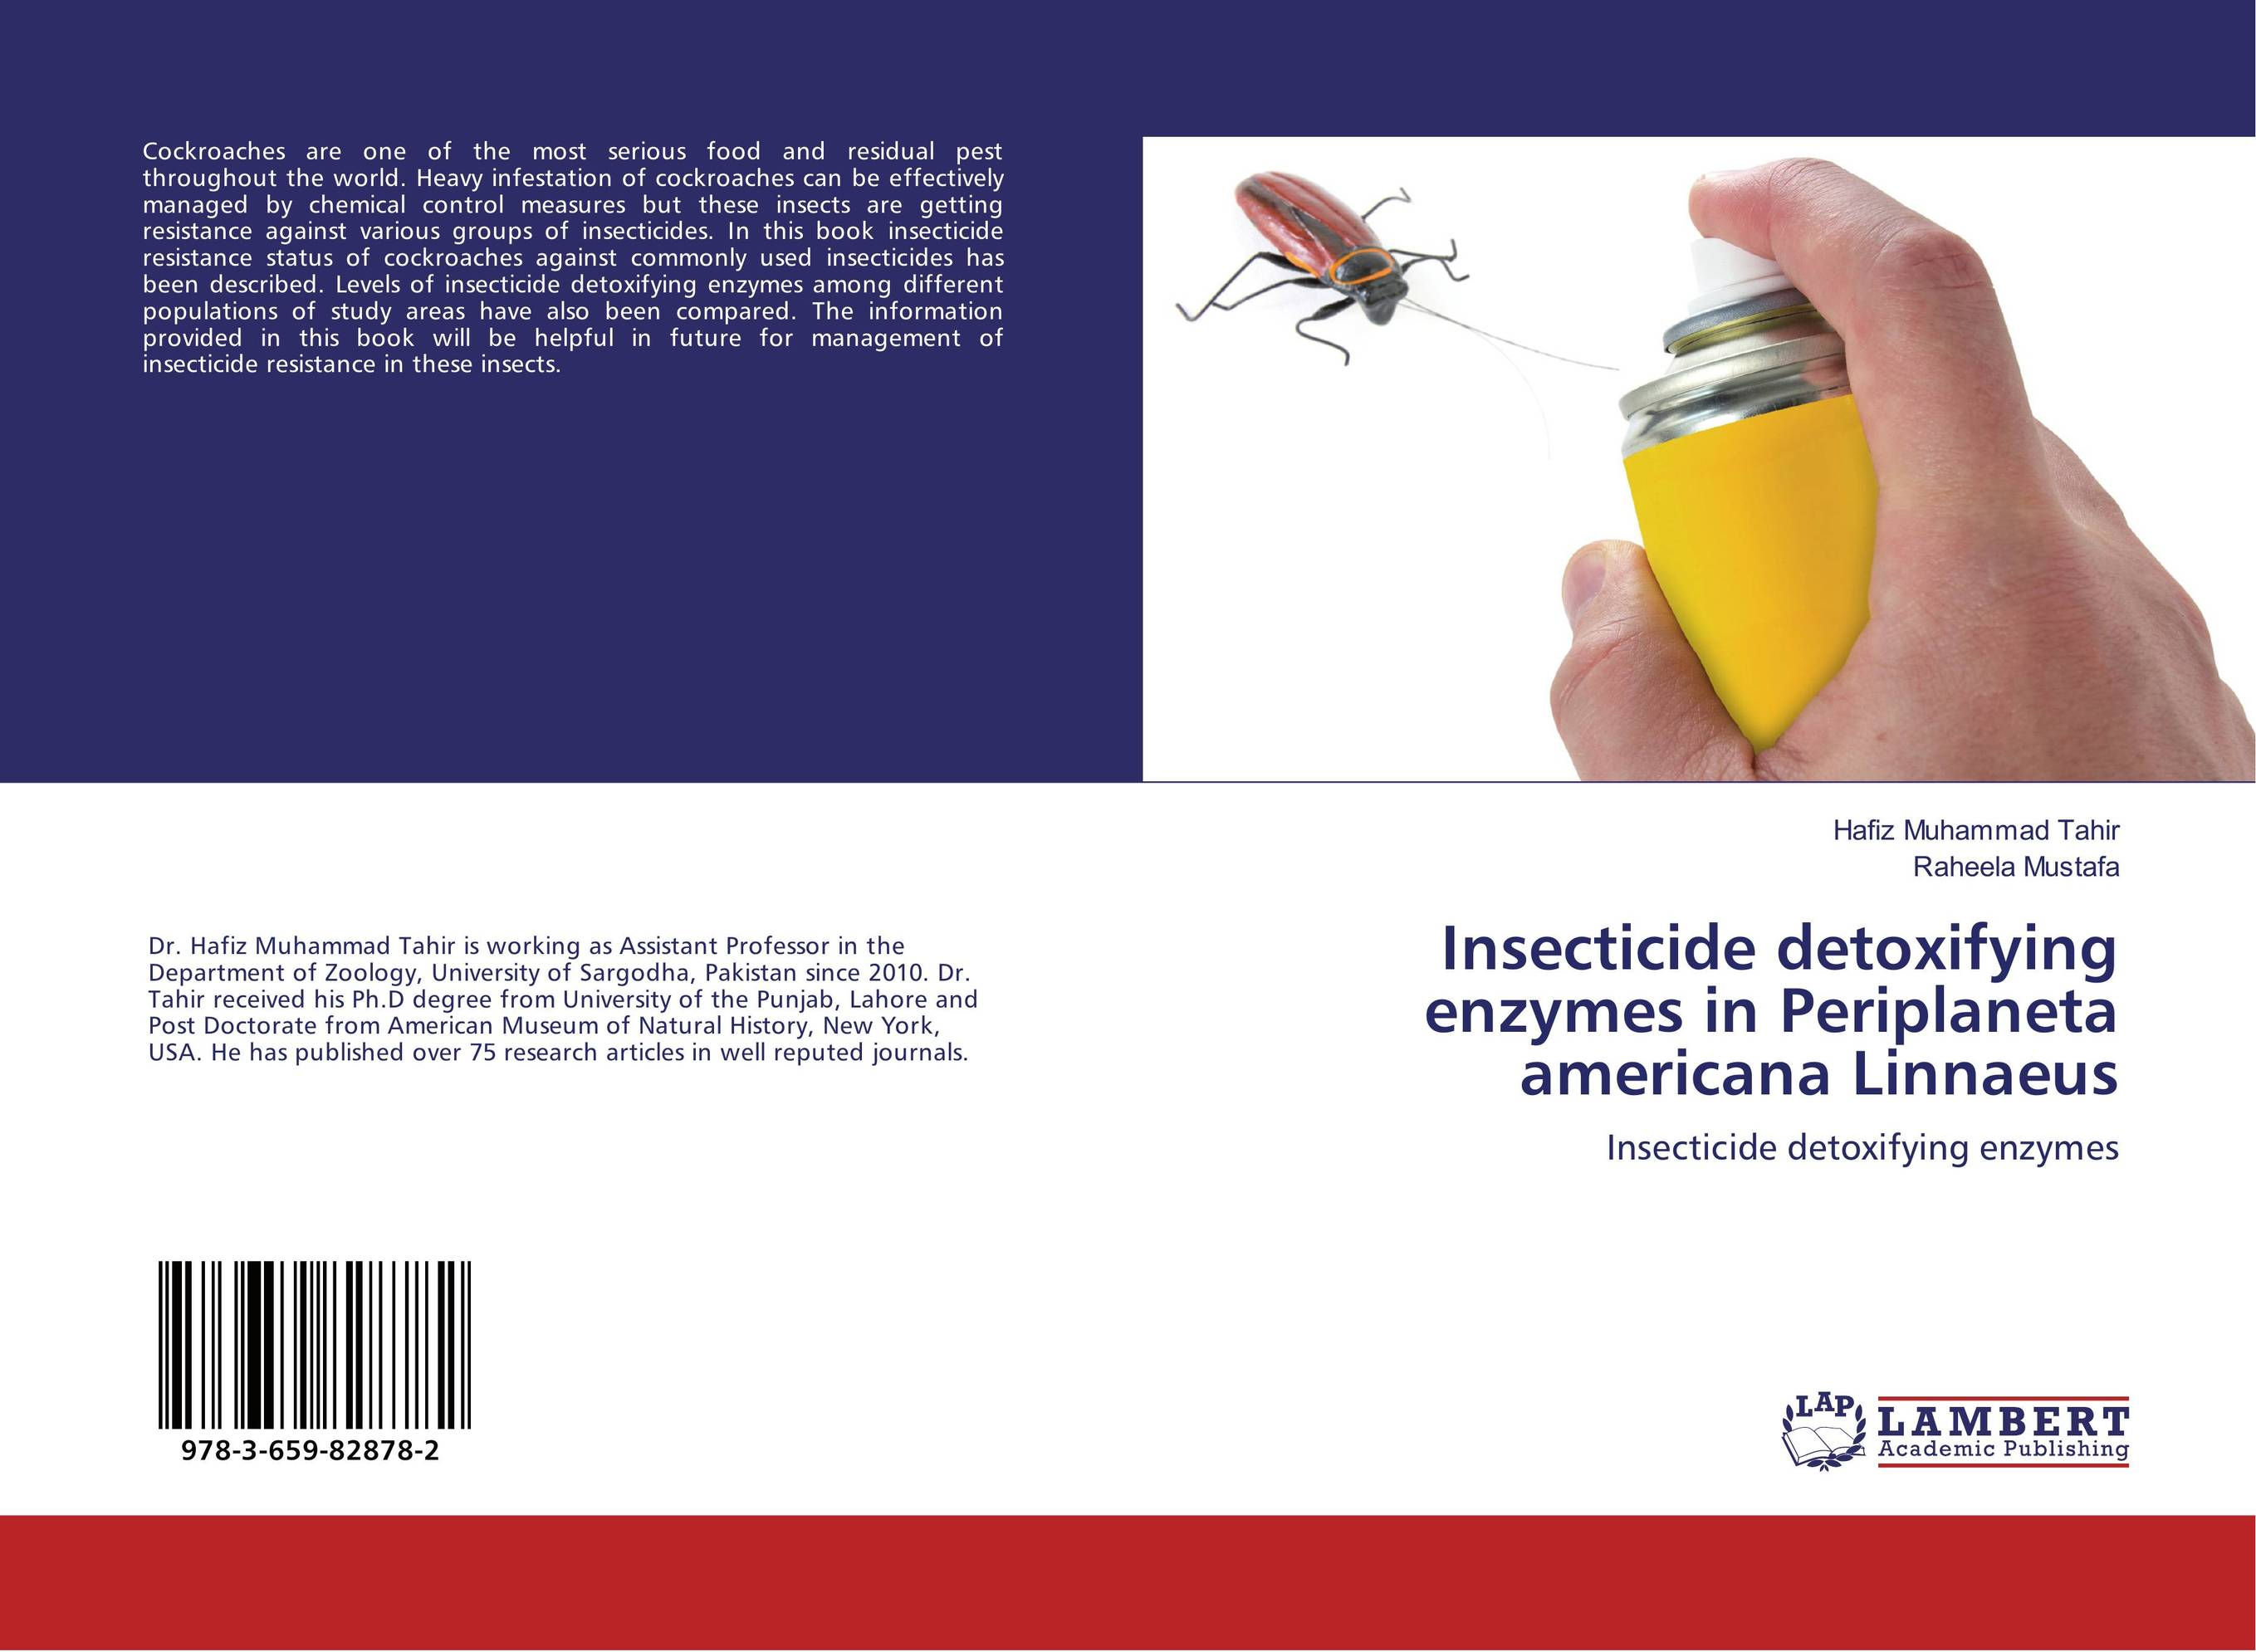 Insecticide detoxifying enzymes in Periplaneta americana Linnaeus resistance study in tomato